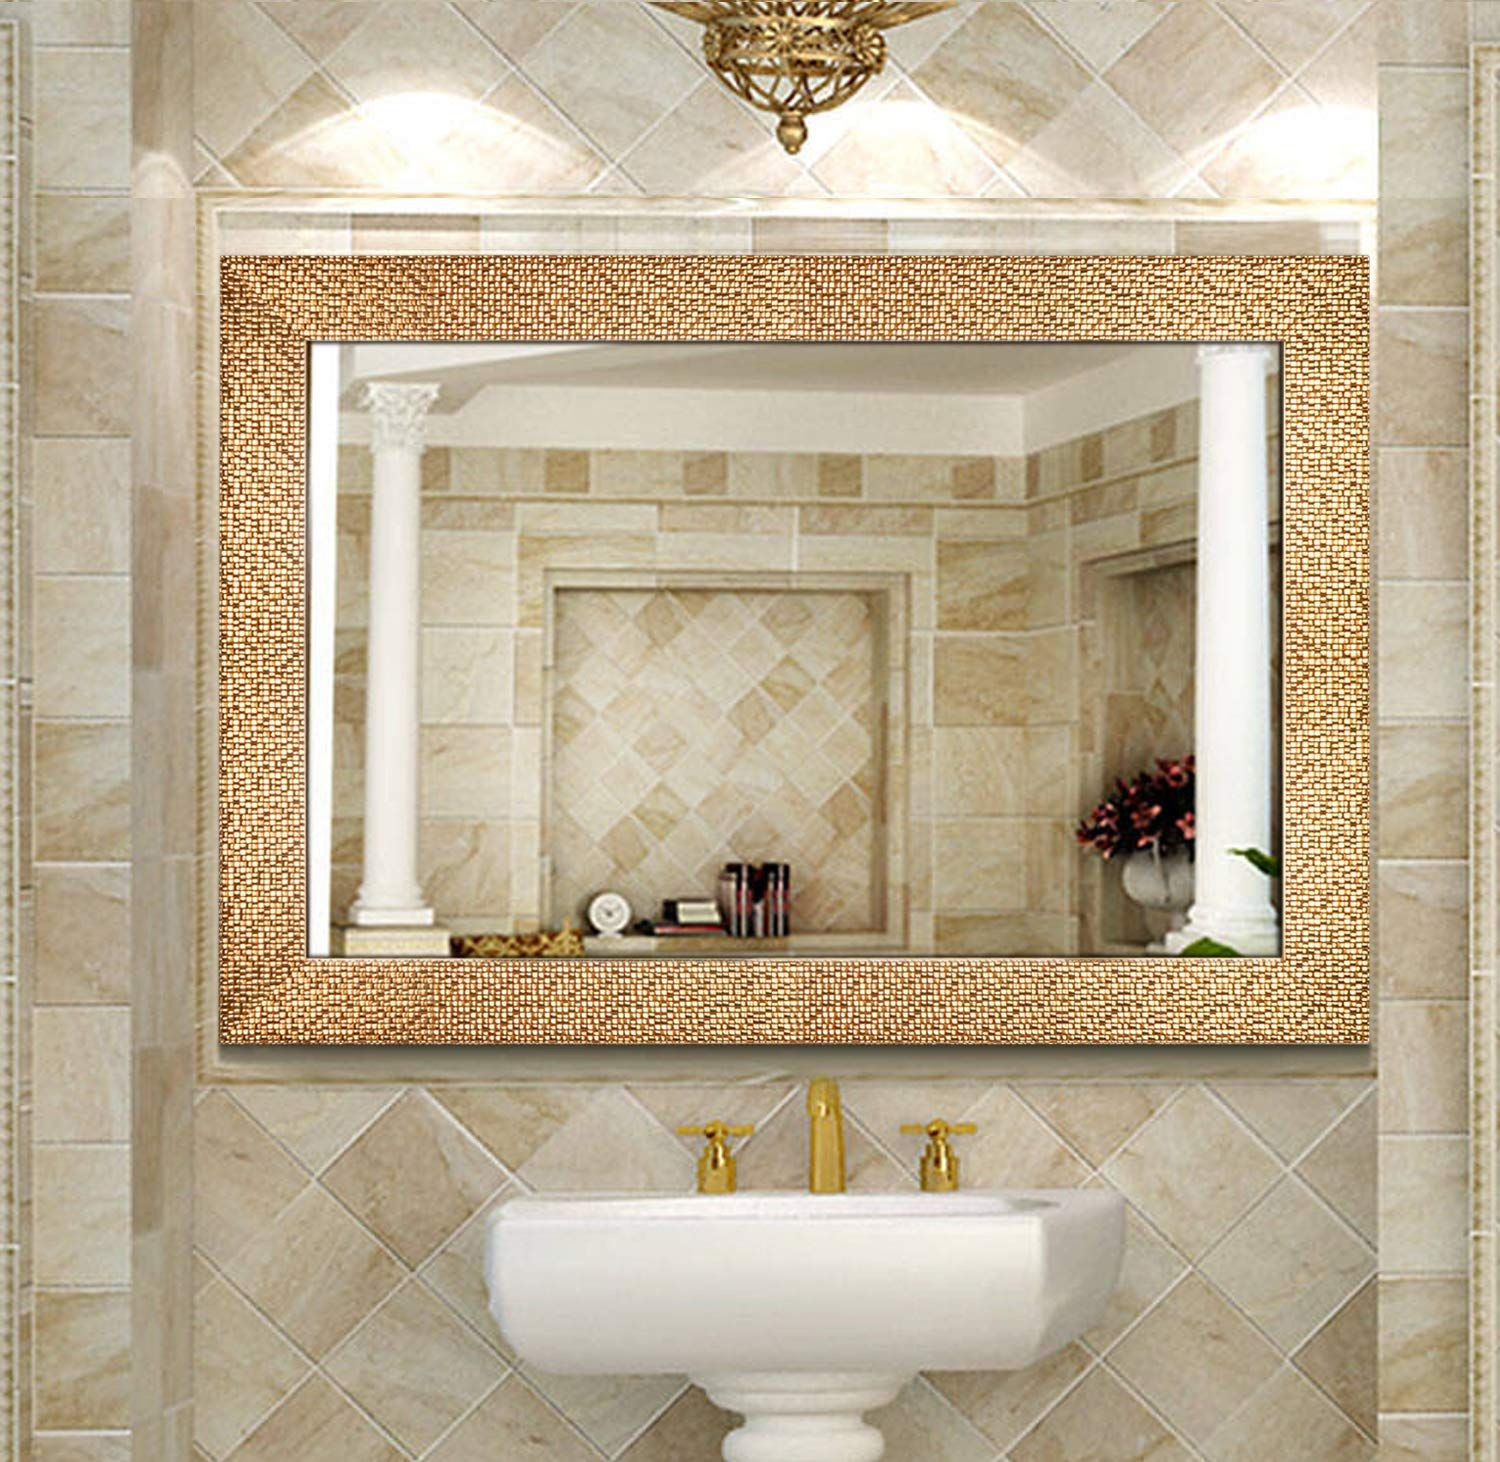 Toppay Framed Bathroom Mirrors For Wall Gold Details Can Be Found By Clicking On The Image It In 2020 Bathroom Mirror Bathroom Mirror Frame Mirror Wall Bathroom